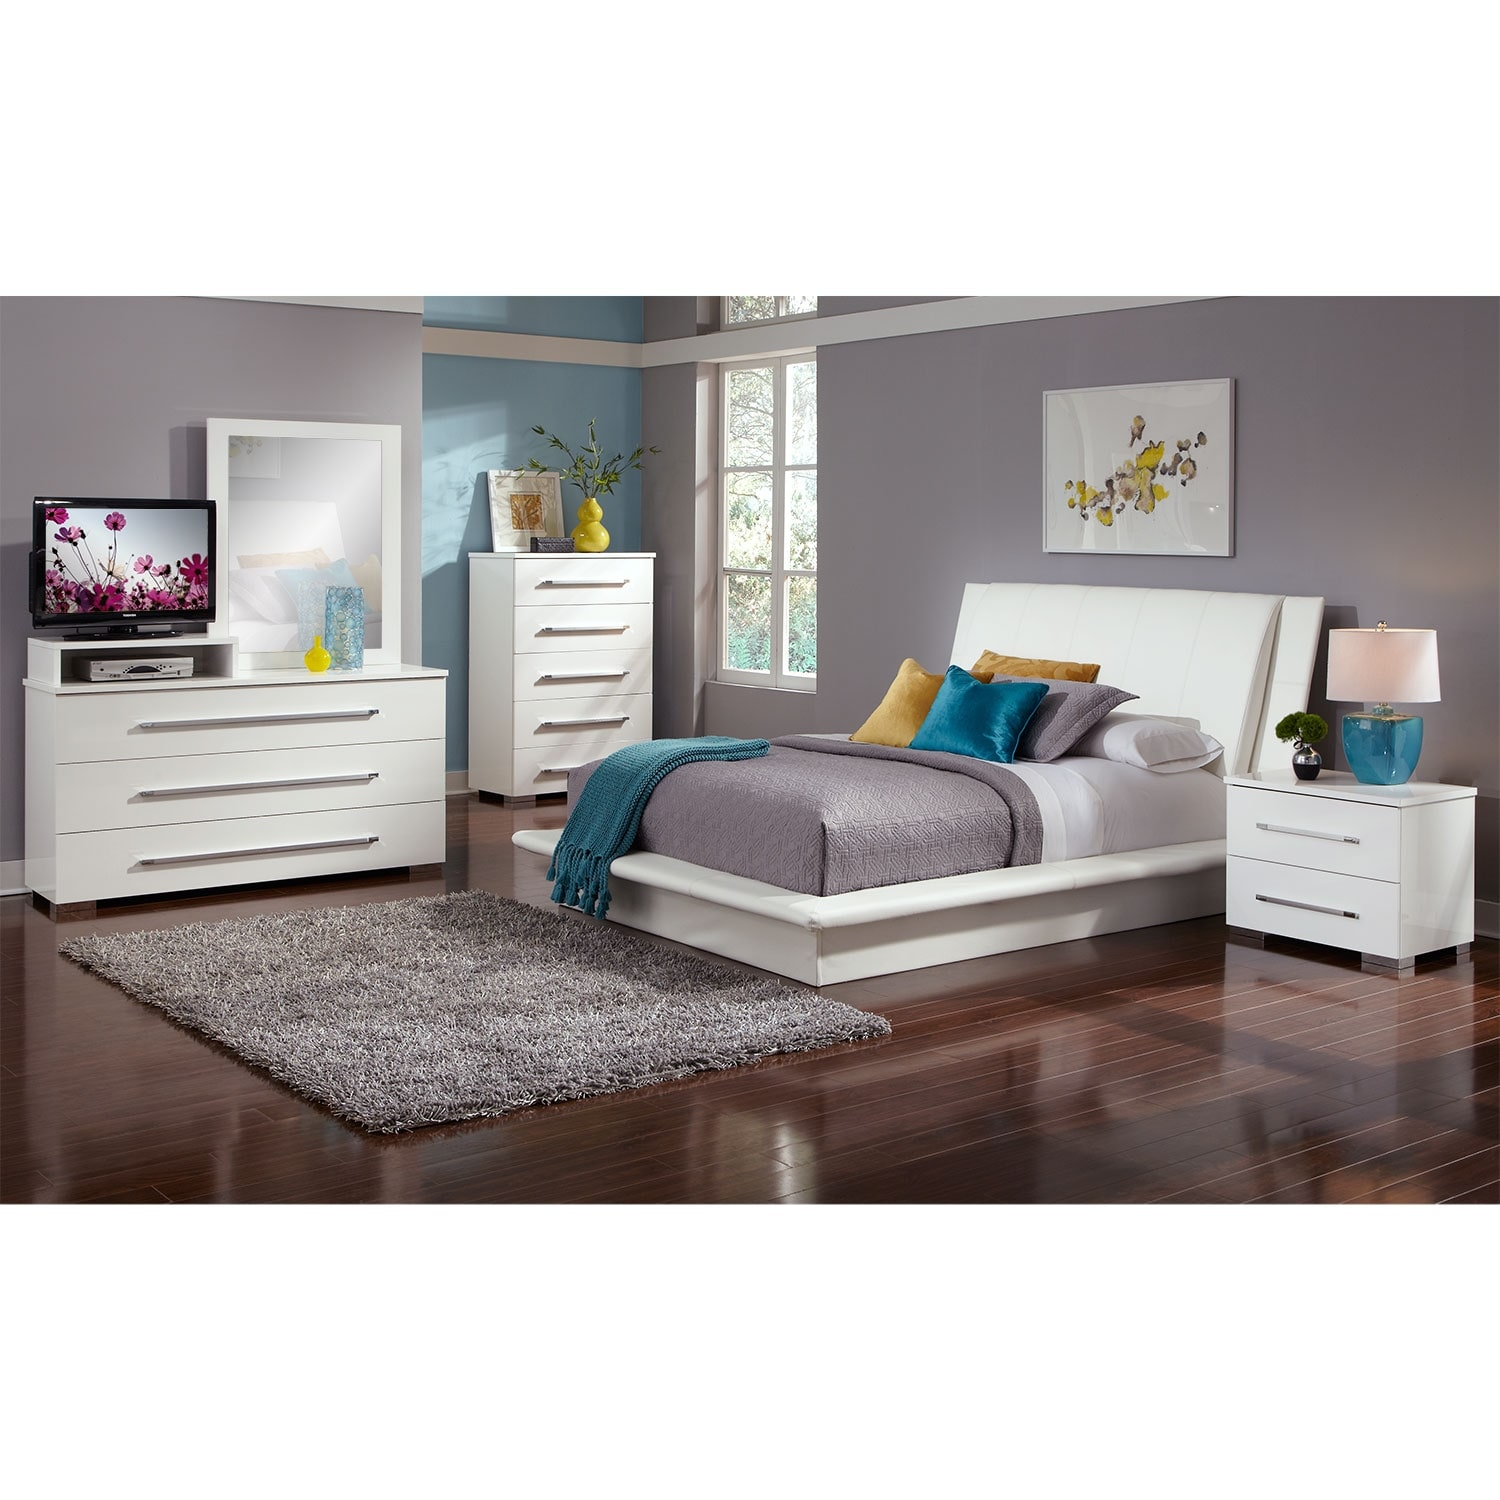 Dimora 7-Piece King Upholstered Bedroom Set with Media Dresser - White